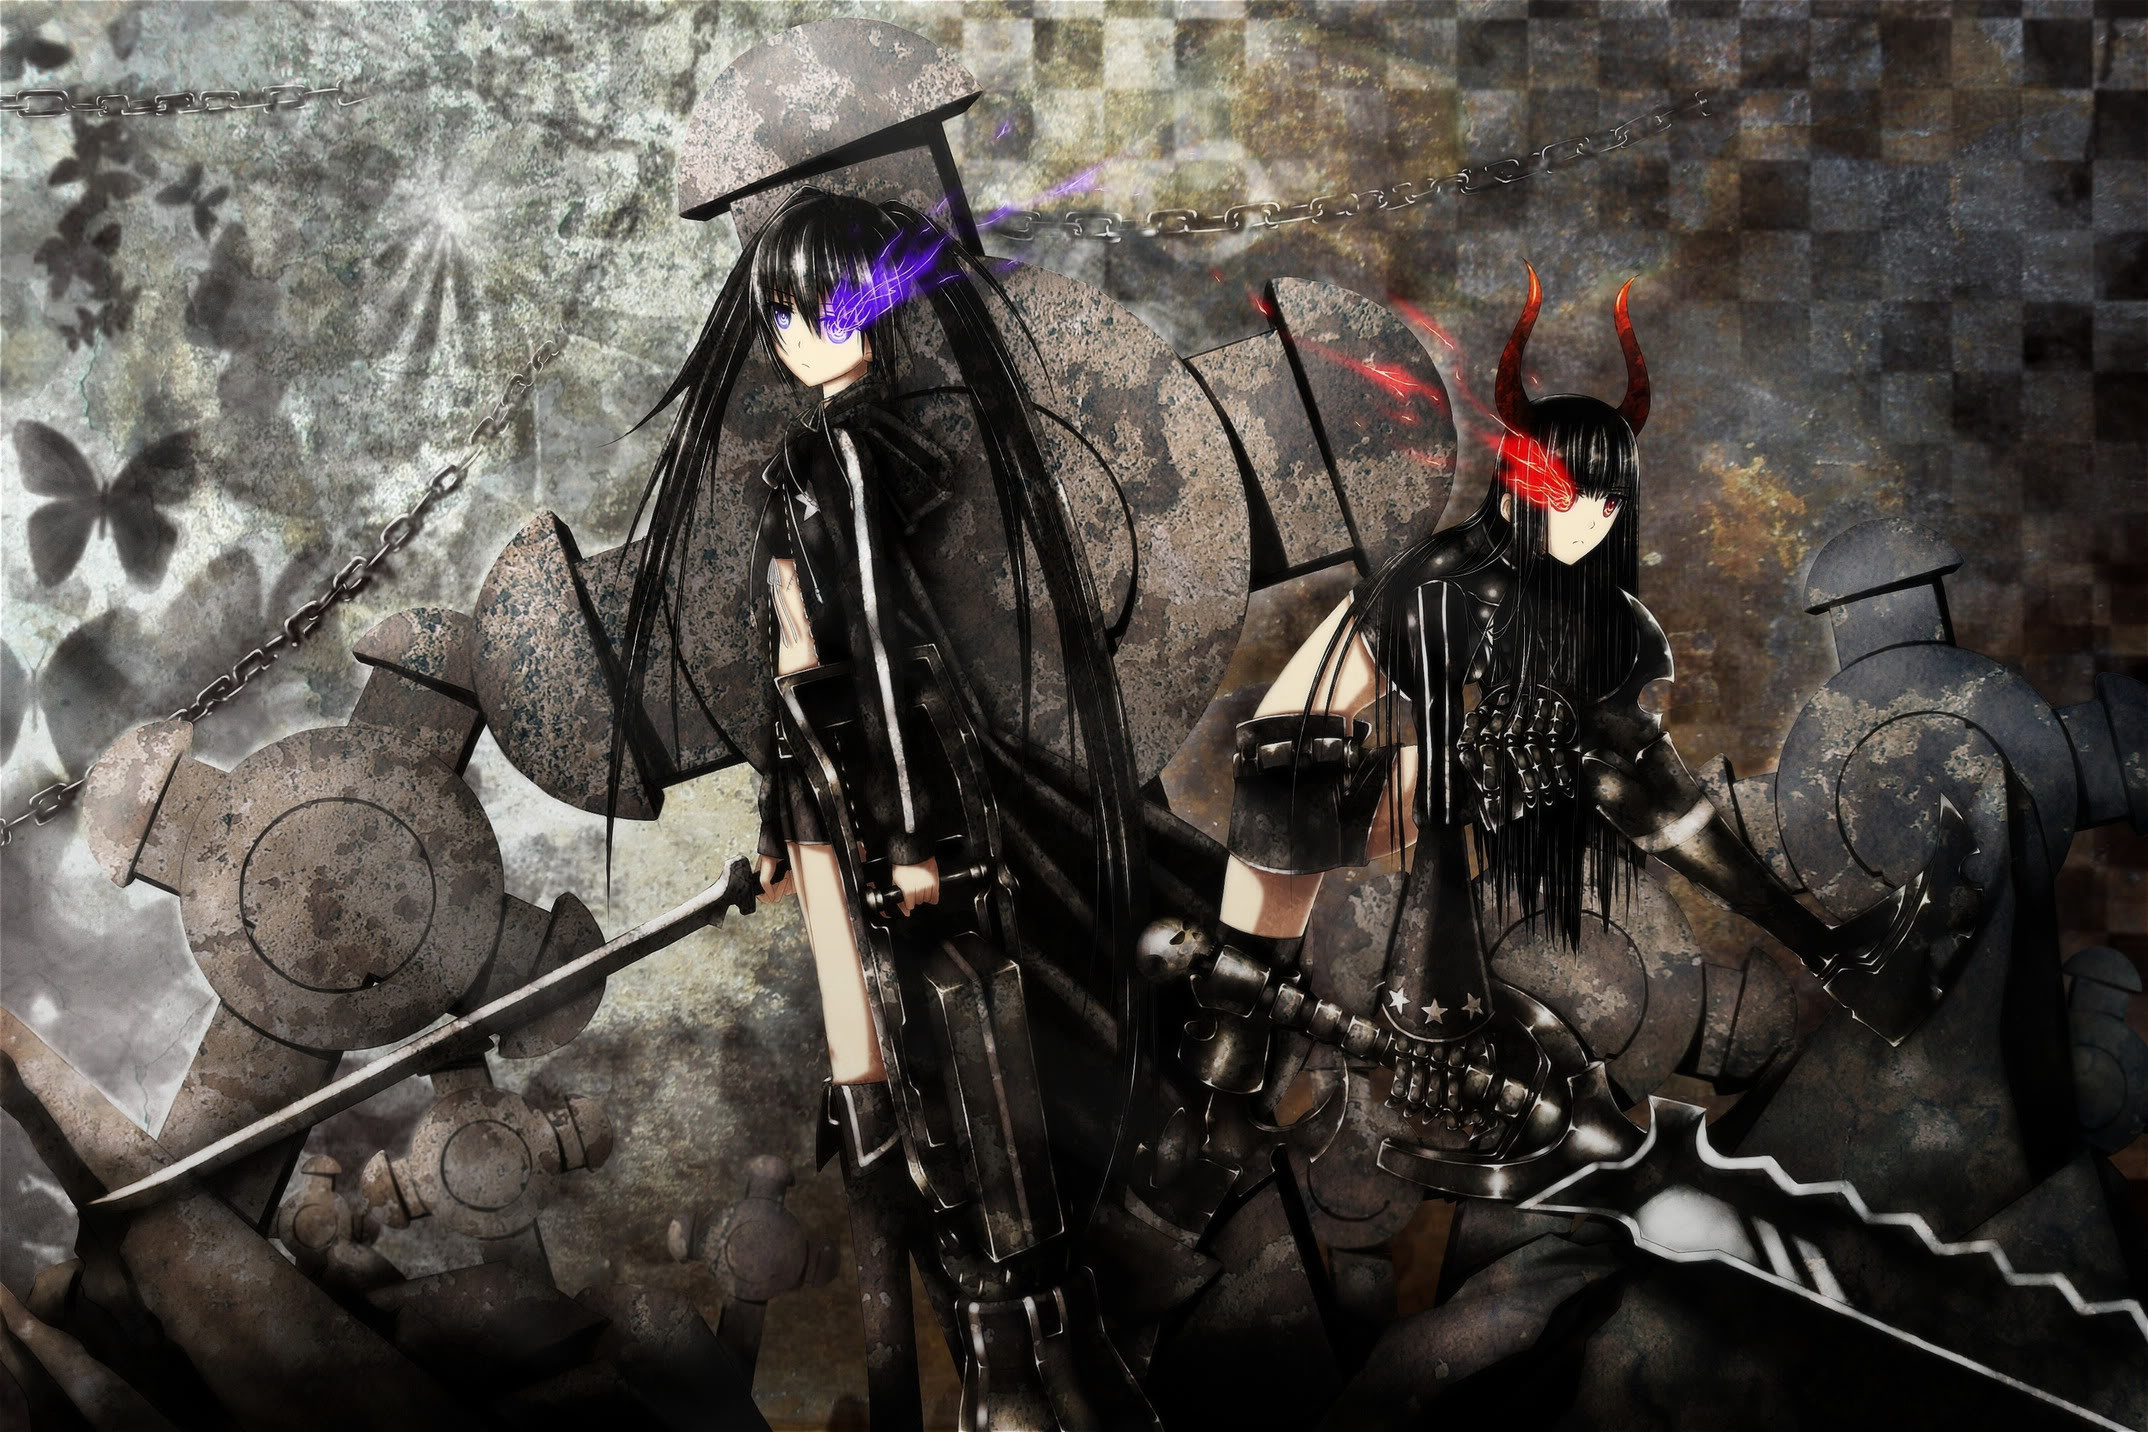 2148x1432 Anime Badass Girl Wallpaper Anime - black rock shooter